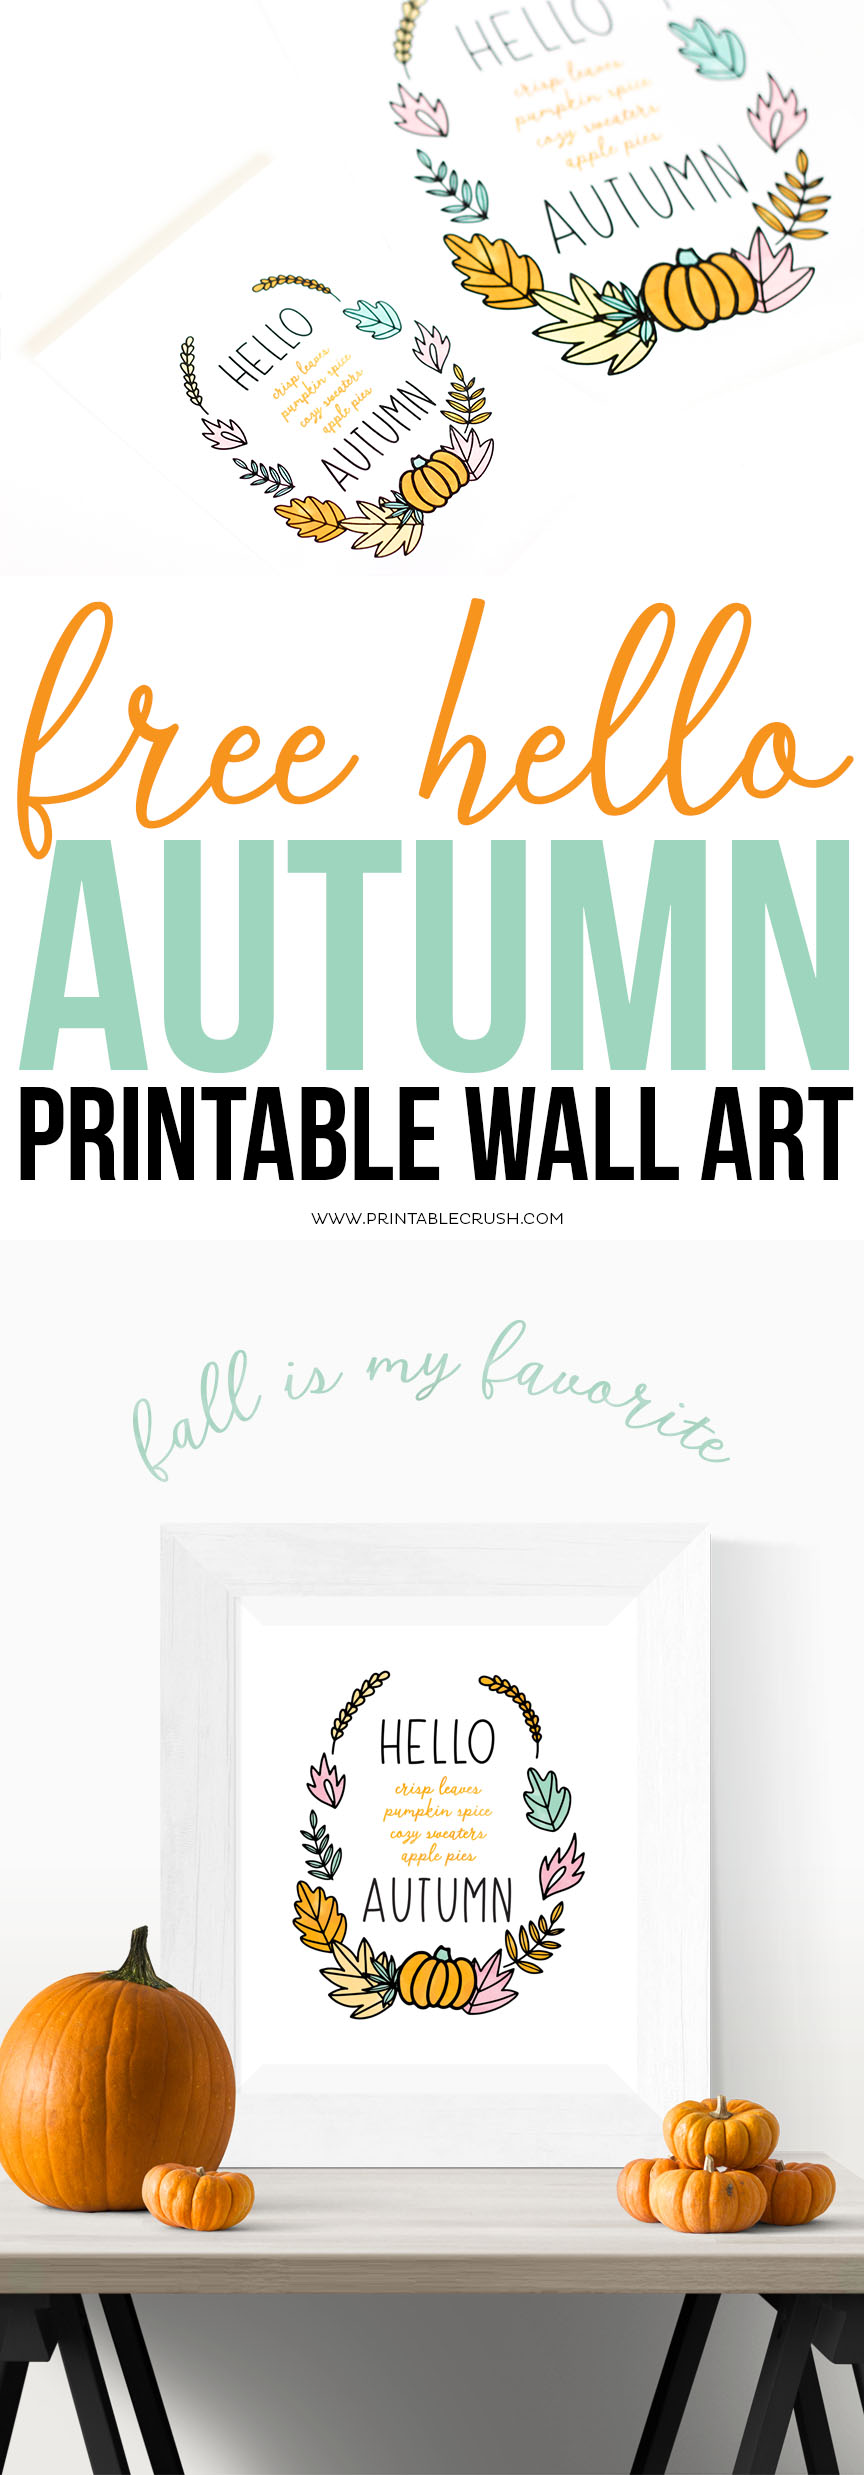 This FREE Hello Autumn Printable Wall Art will be a gorgeous new addition to your home. Simply download, print, and display! via @printablecrush